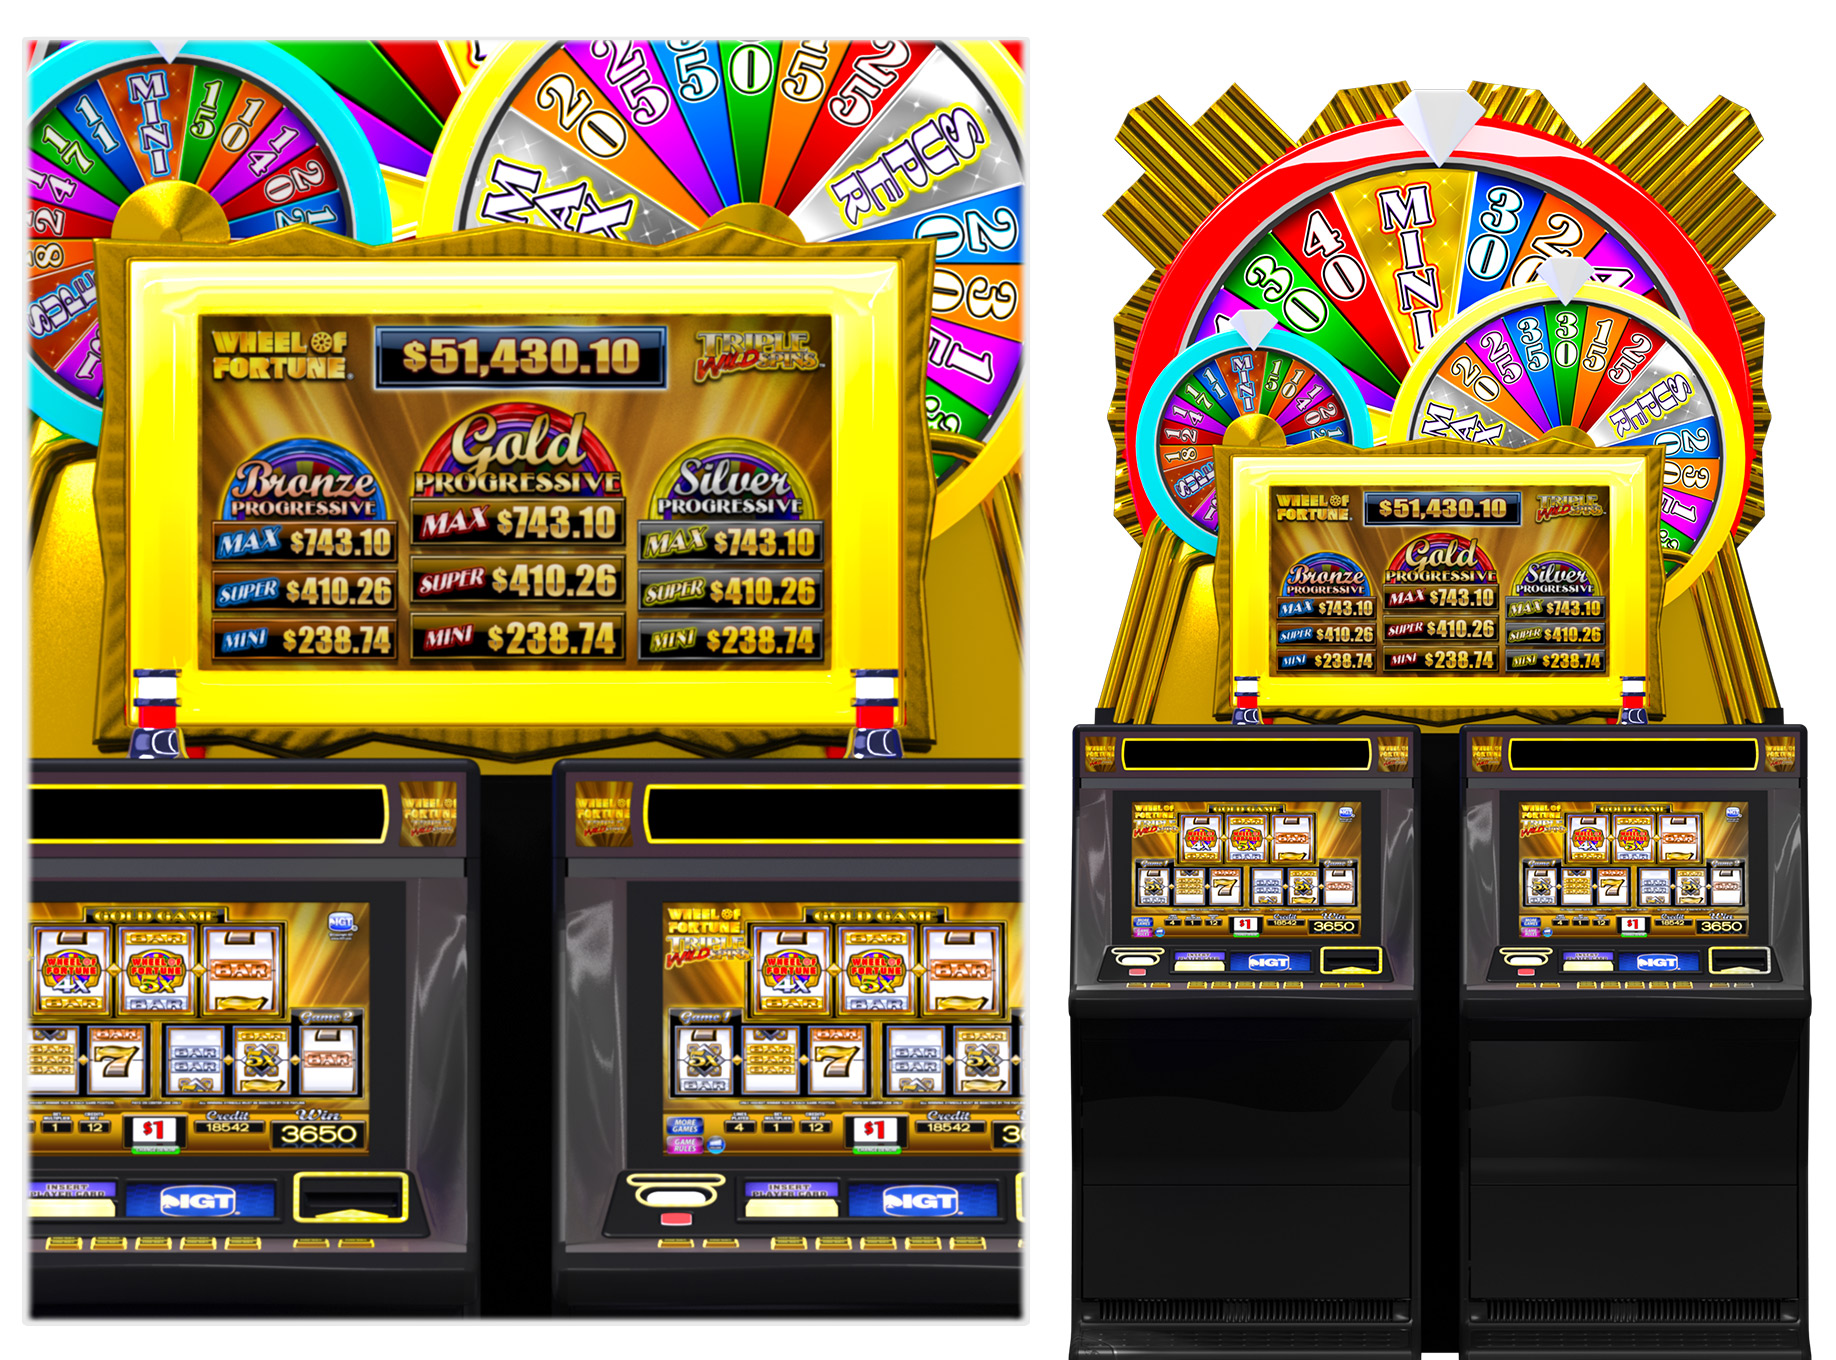 wheel of fortune slot machine online kostenlös spielen